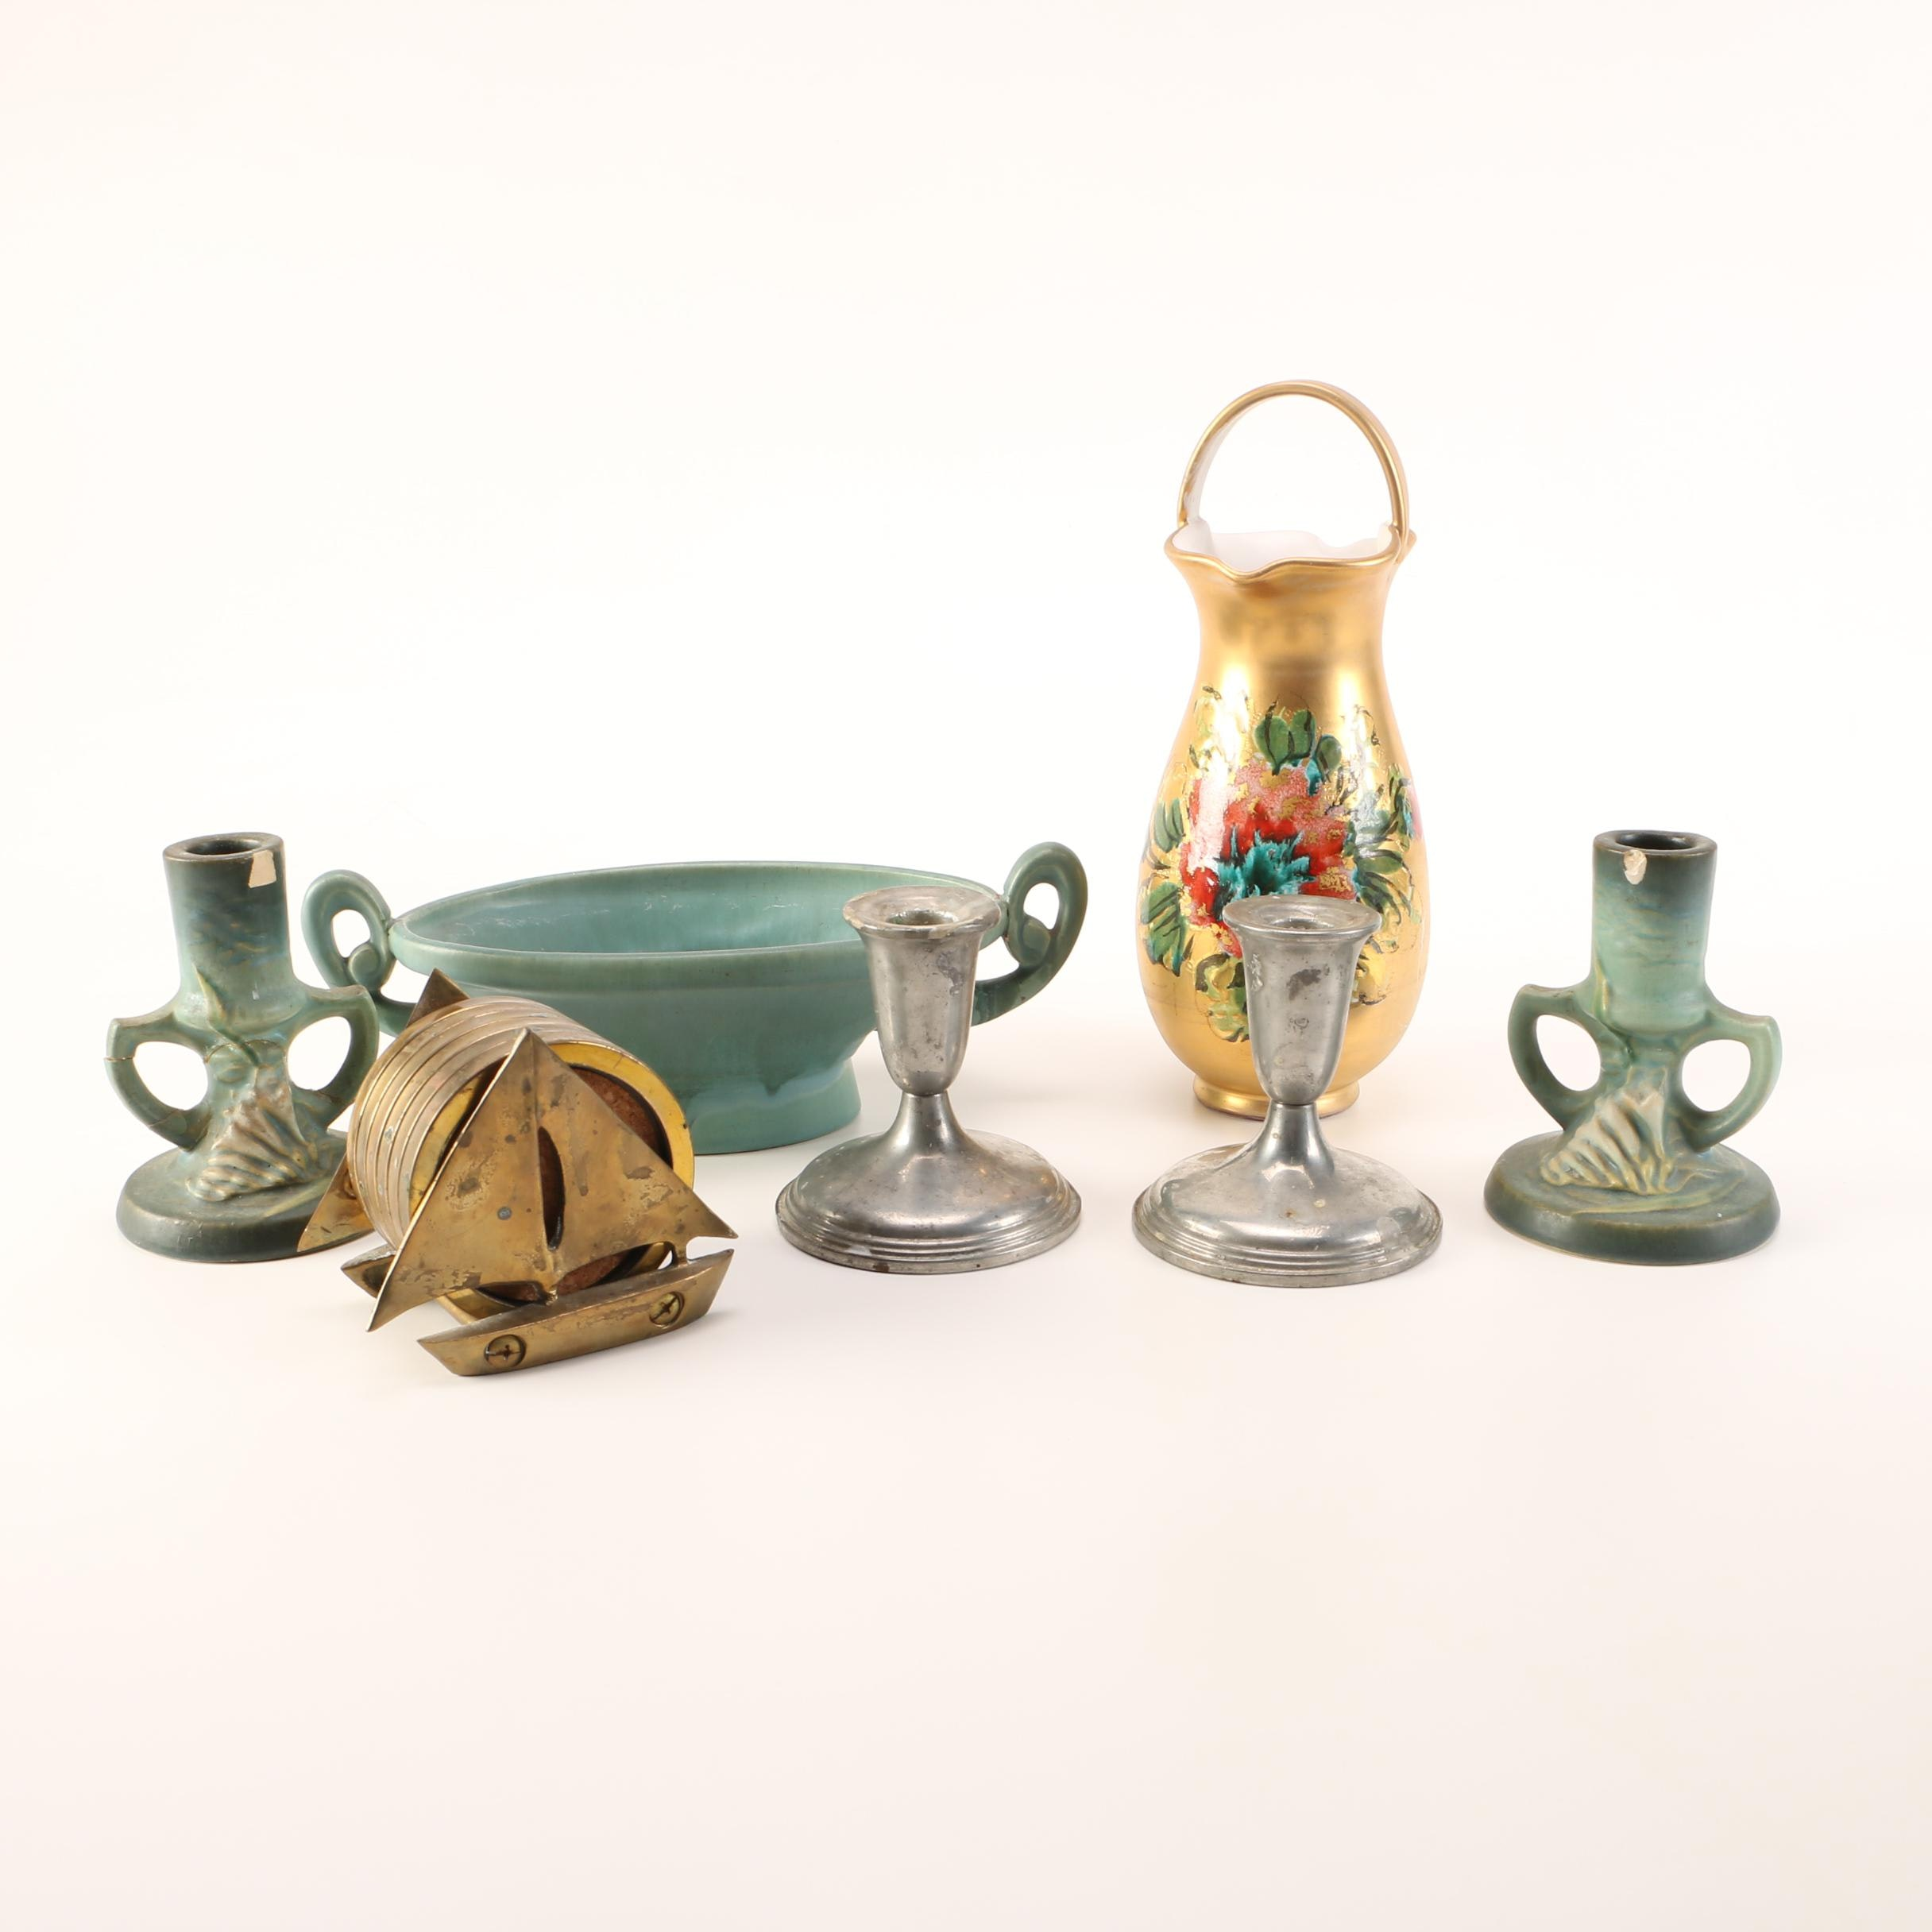 Collection of Home Decor including Roseville